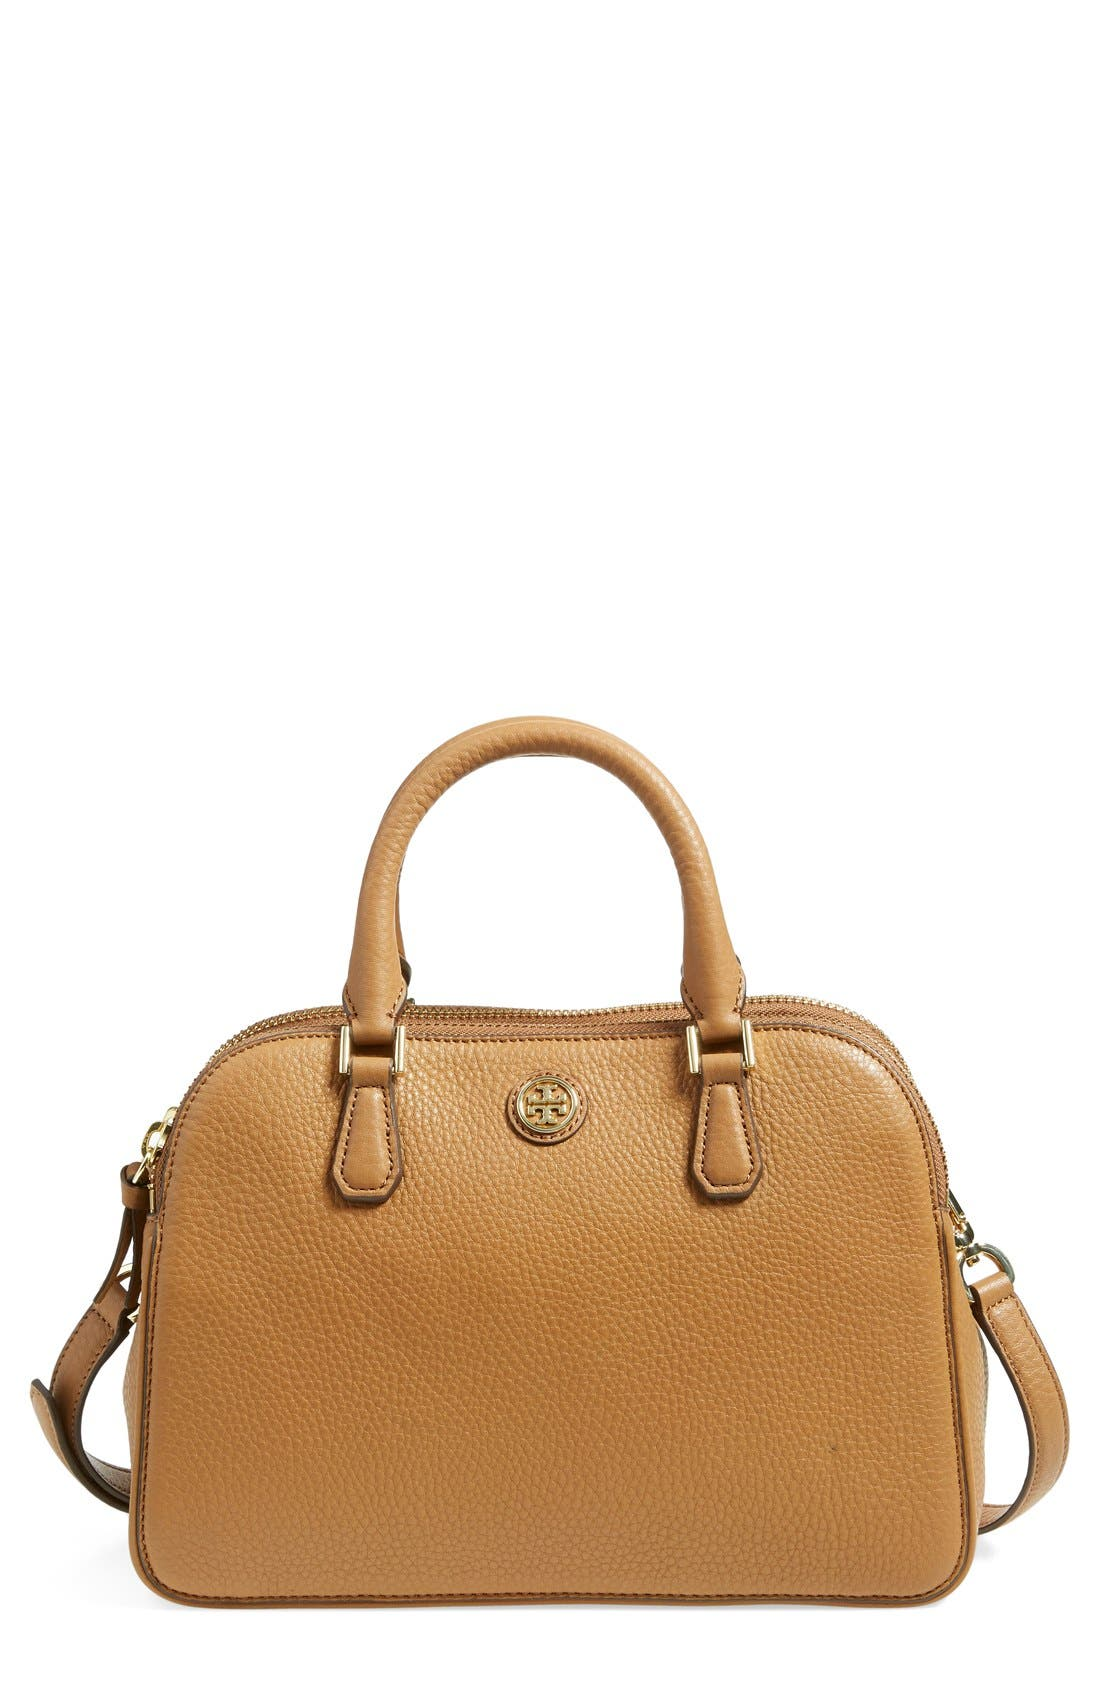 Main Image - Tory Burch 'Small Robinson' Pebbled Leather Satchel